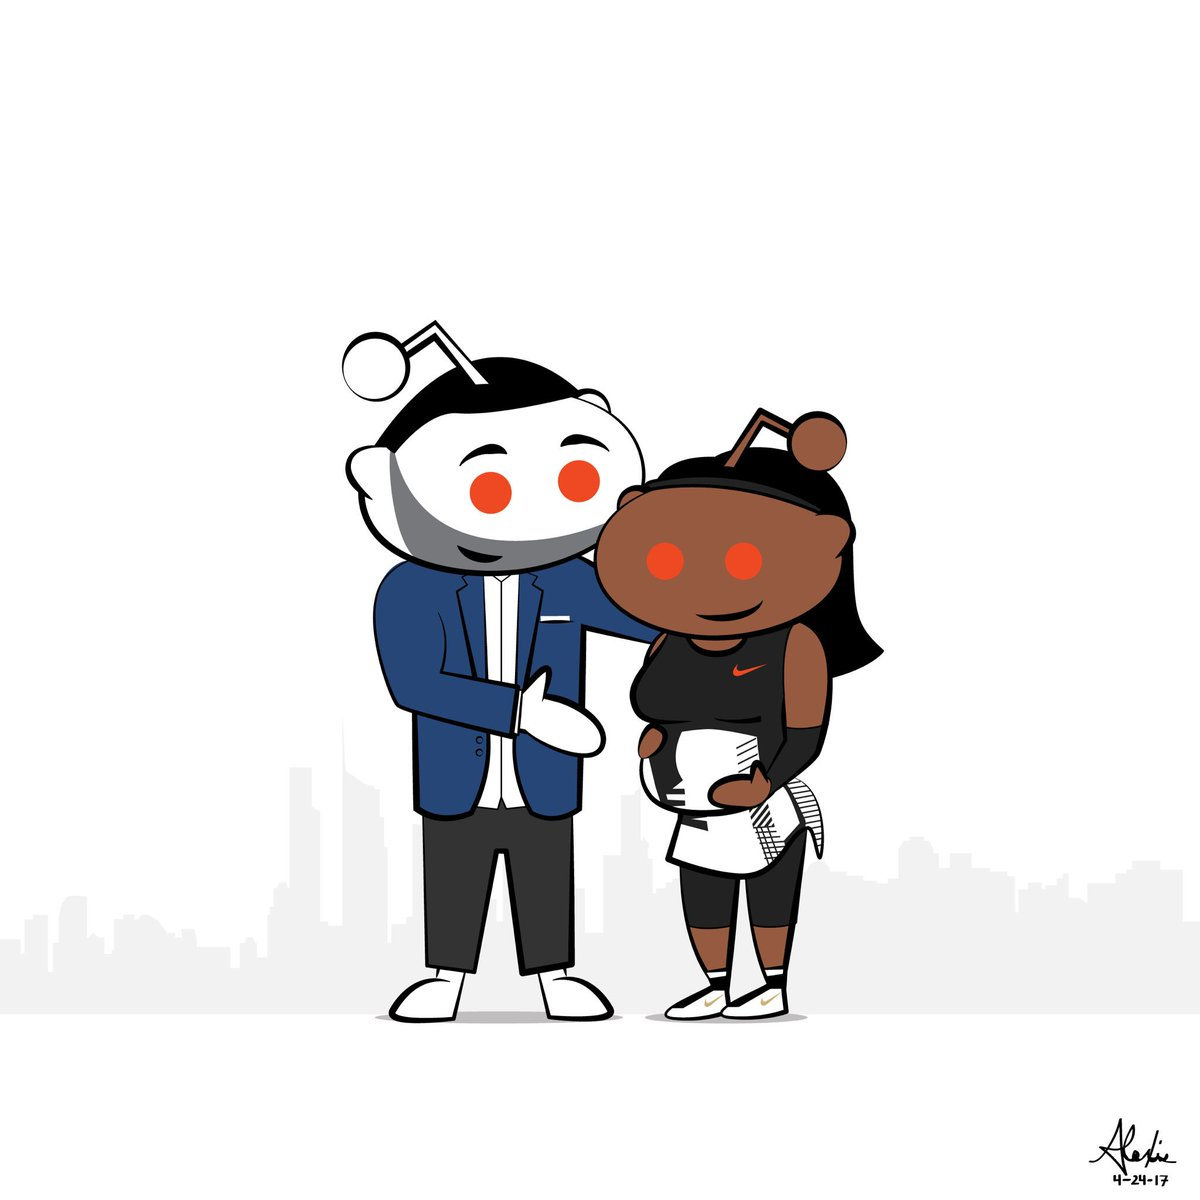 A new Snoo is on the way!  https://t.co/qTOXiysuJ9